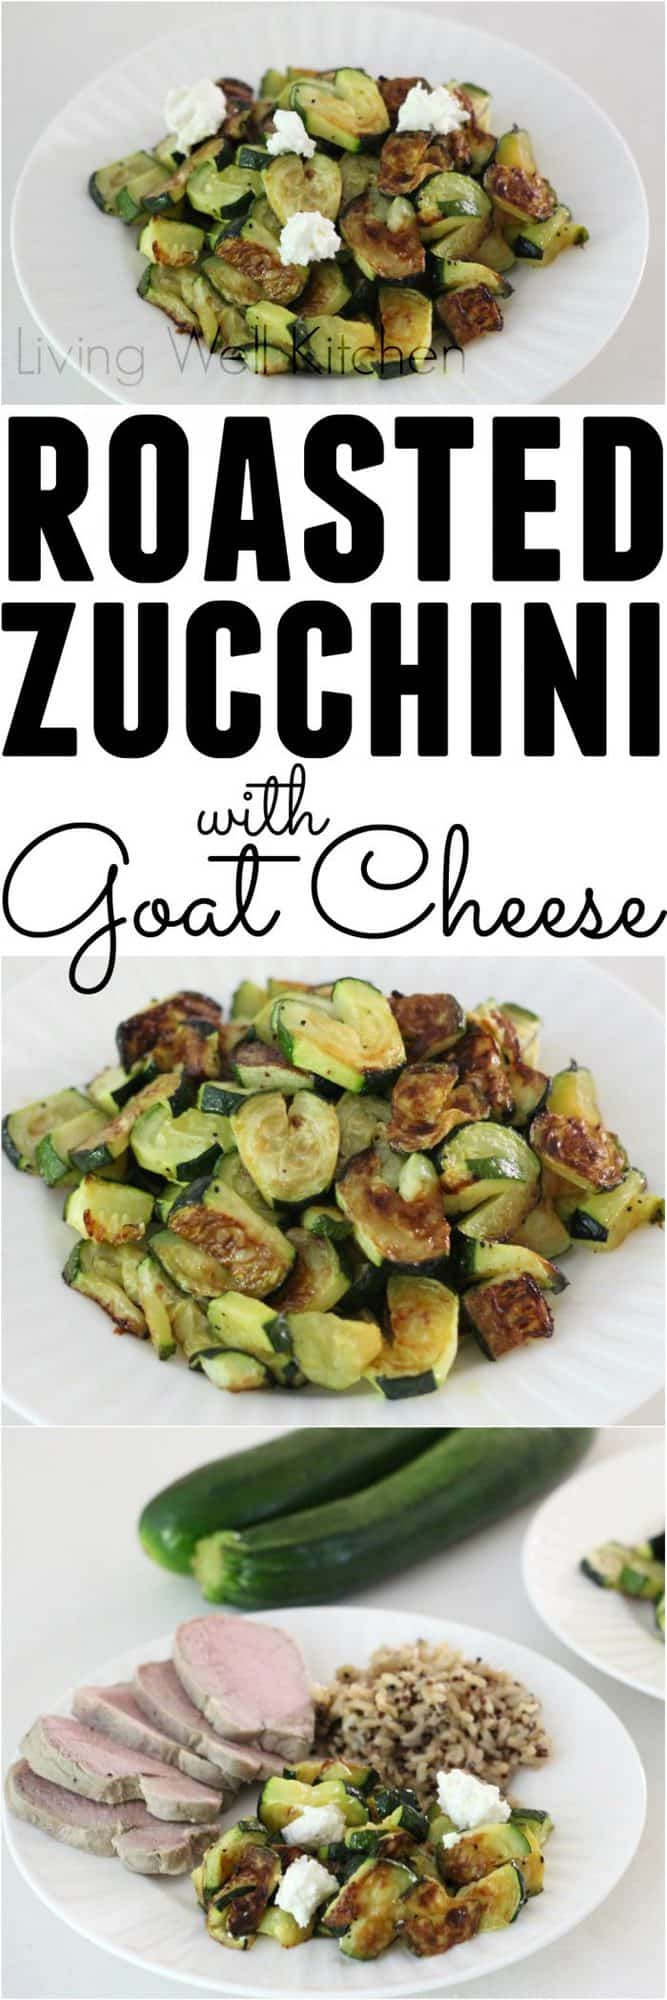 Roasted Zucchini Hearts with Goat Cheese from @memeinge. Heart-shaped veggies make life more fun, and these heart-shaped zucchinis are delicious after being roasted and topped with goat cheese. Includes a video for making heart-shaped zucchini